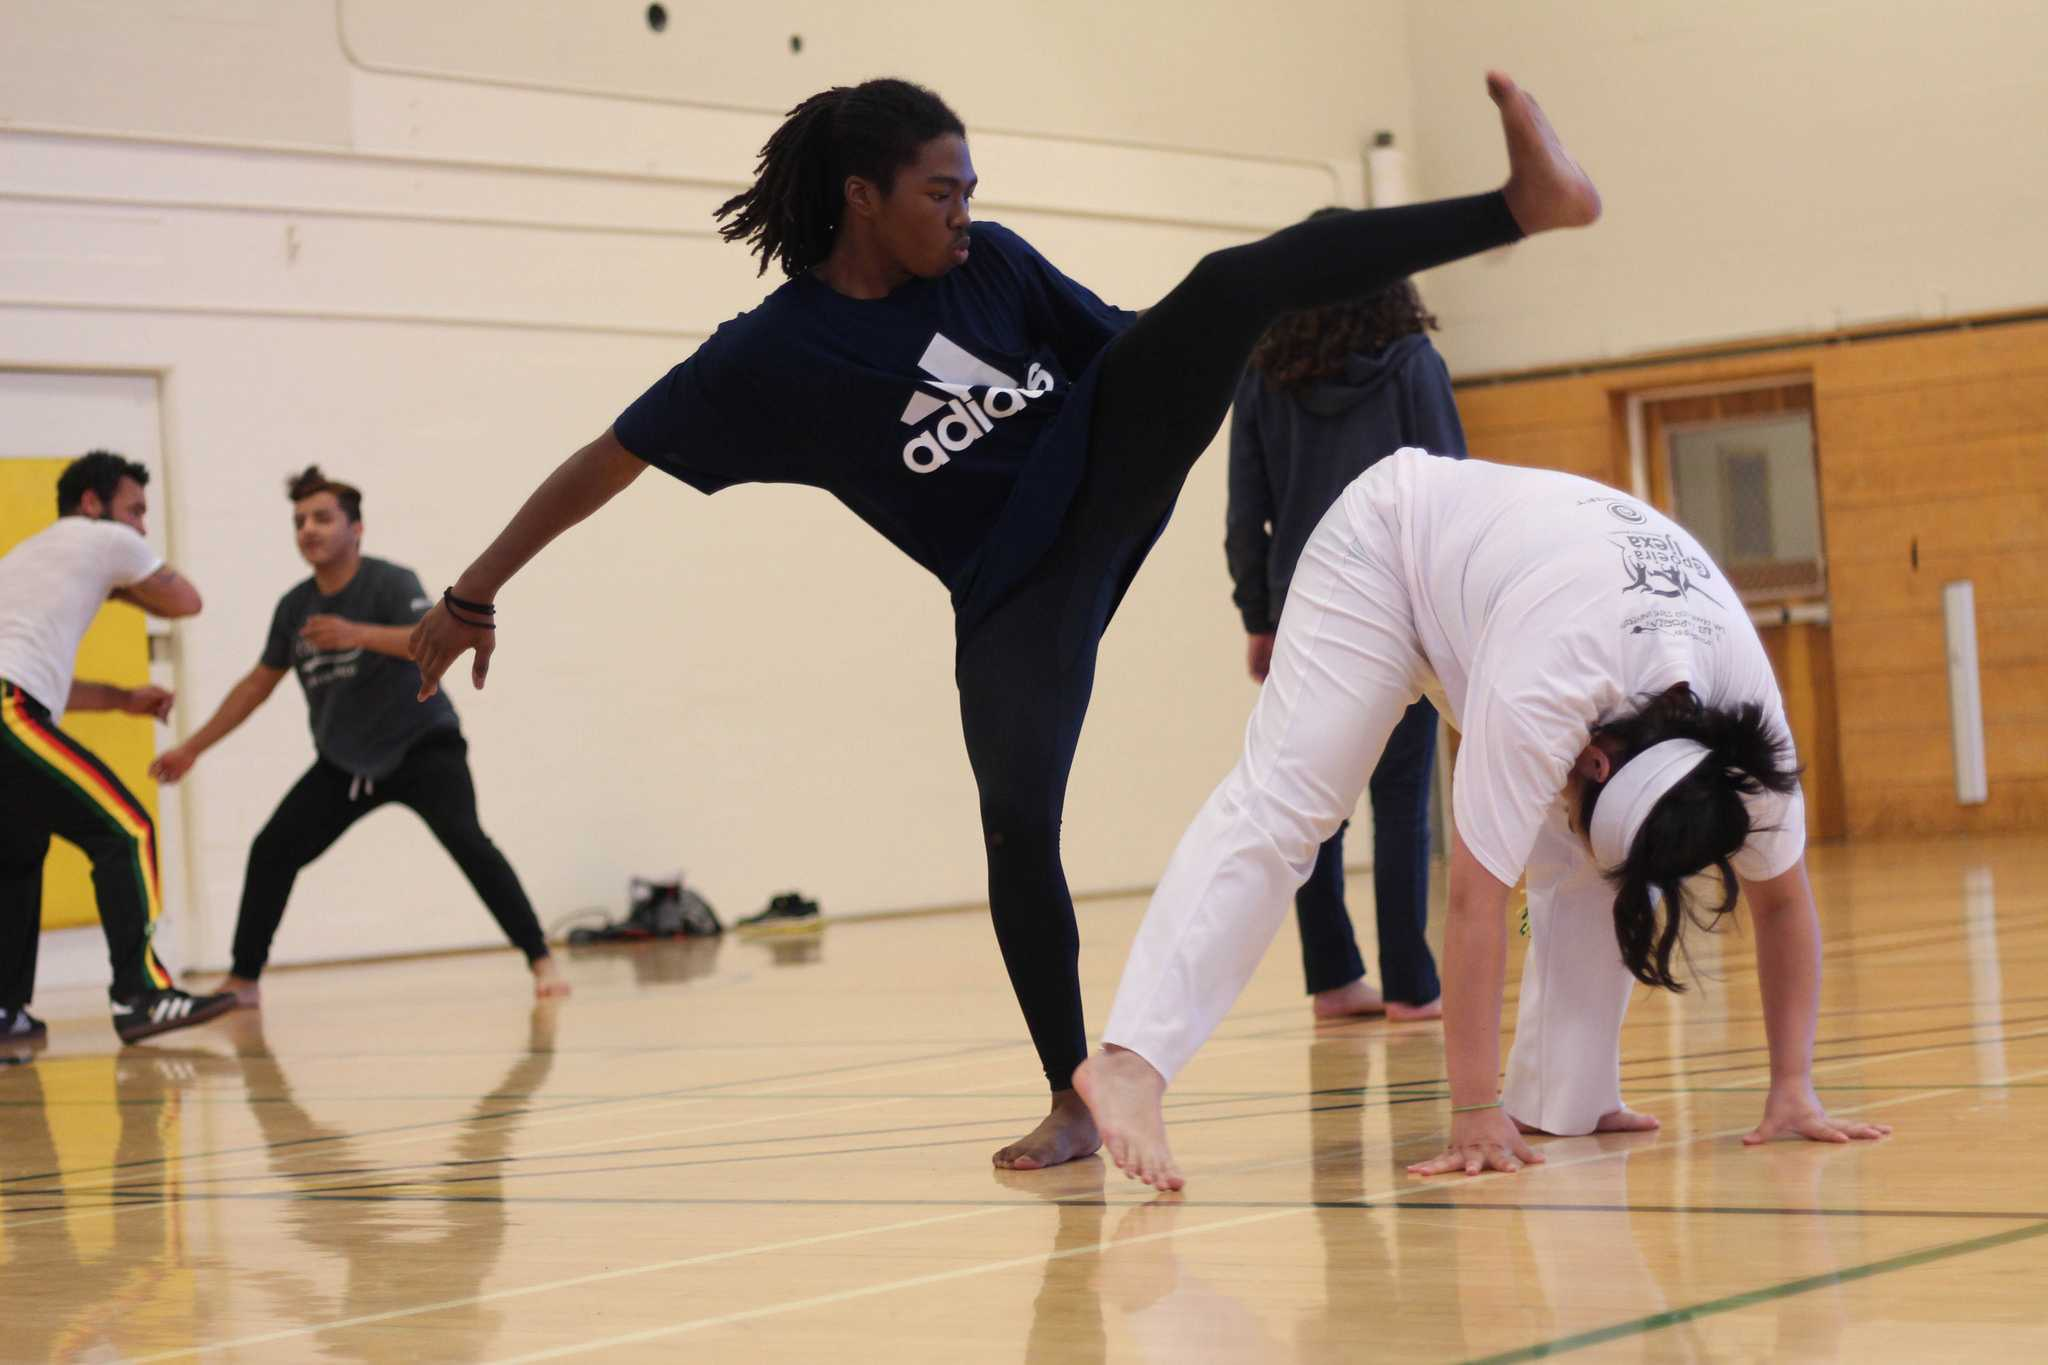 Students and members of the Capoeira Club at SF State, Sean Smith, practices his Capoeira techniques during practice Friday, Oct. 9, 2015. (Alex Kofman / Xpress)